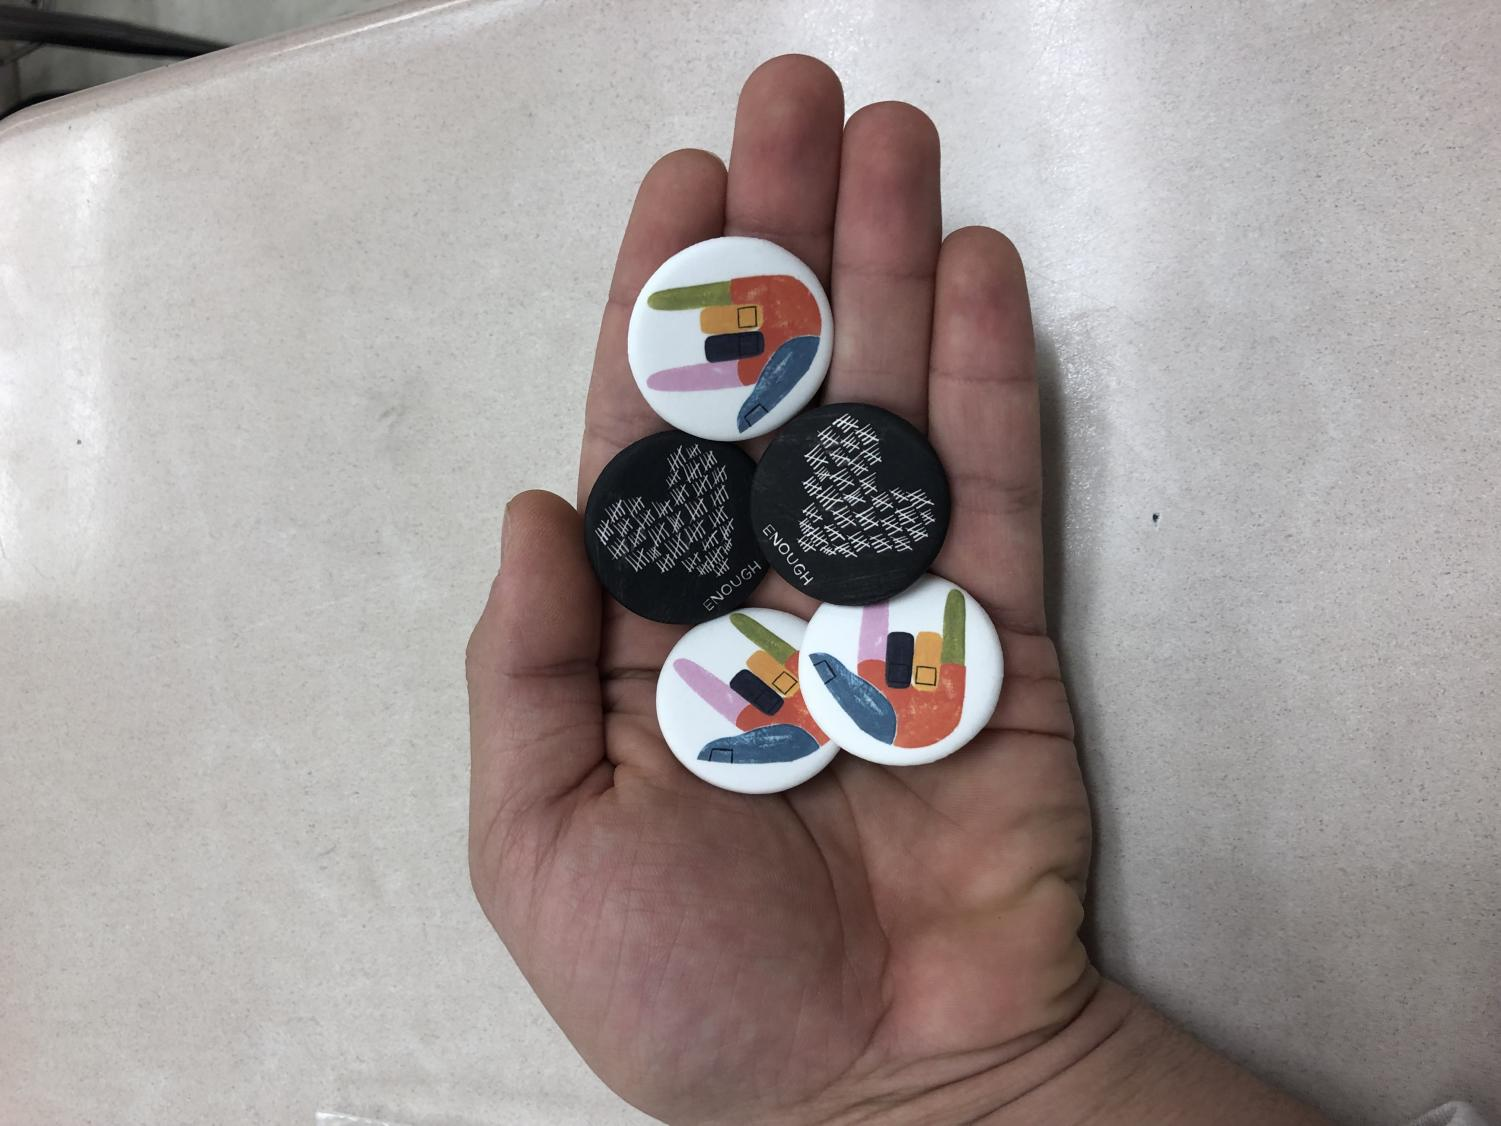 Moco for change gave out free pins to students who attended the march.